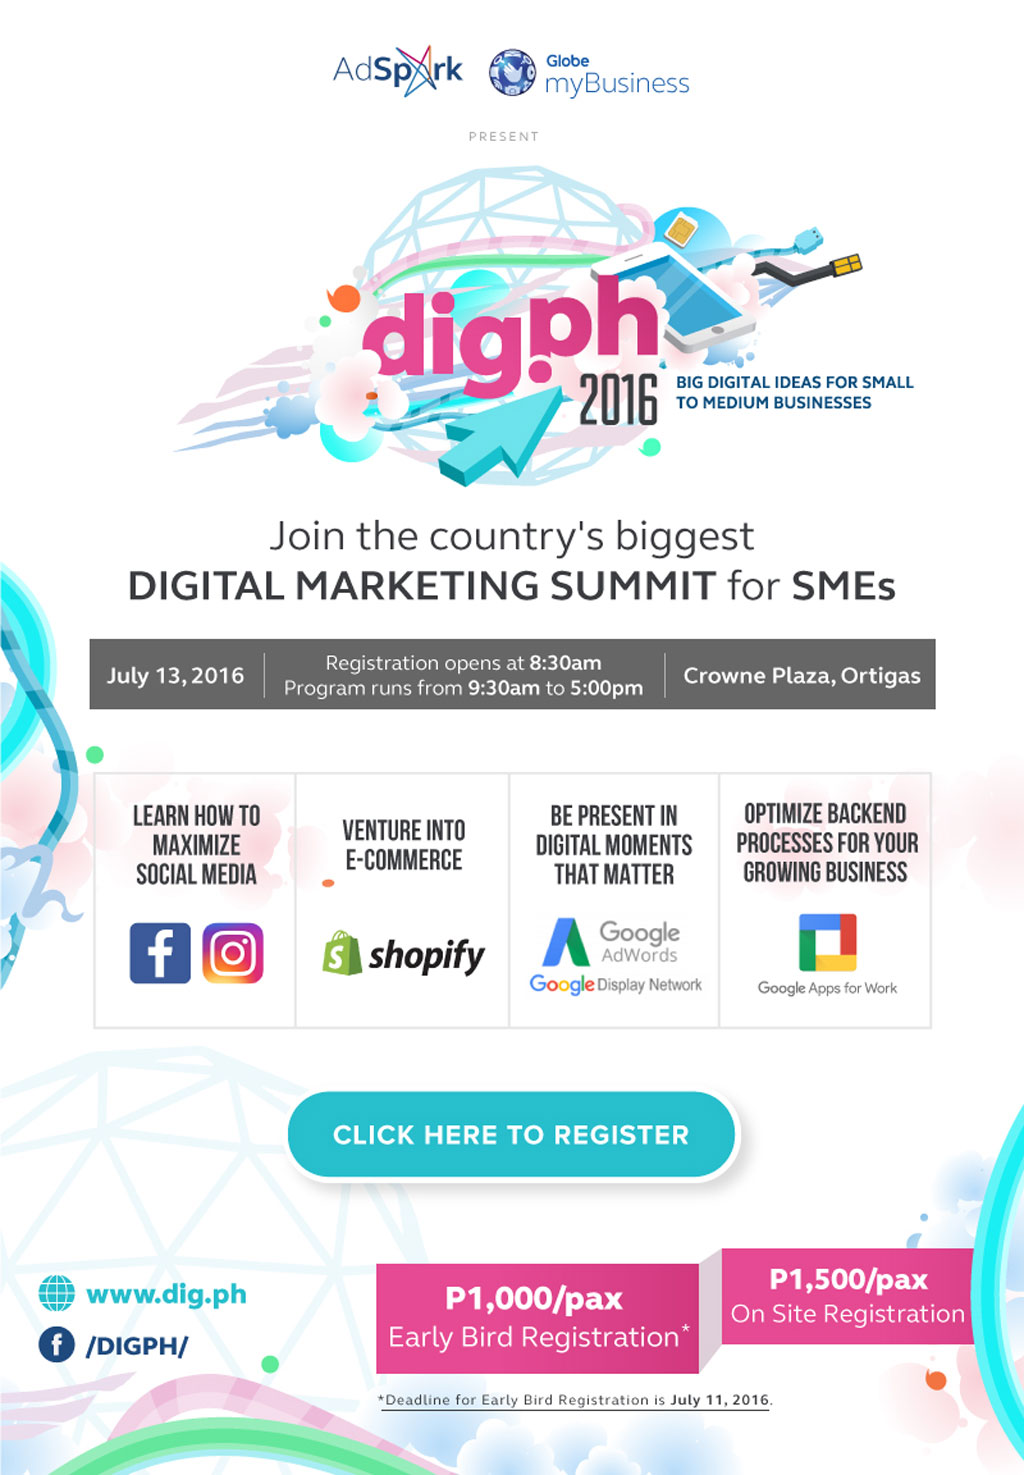 DigPH Digital & Mobile Marketing SummitDigPH Digital and Mobile Marketing Summit official poster